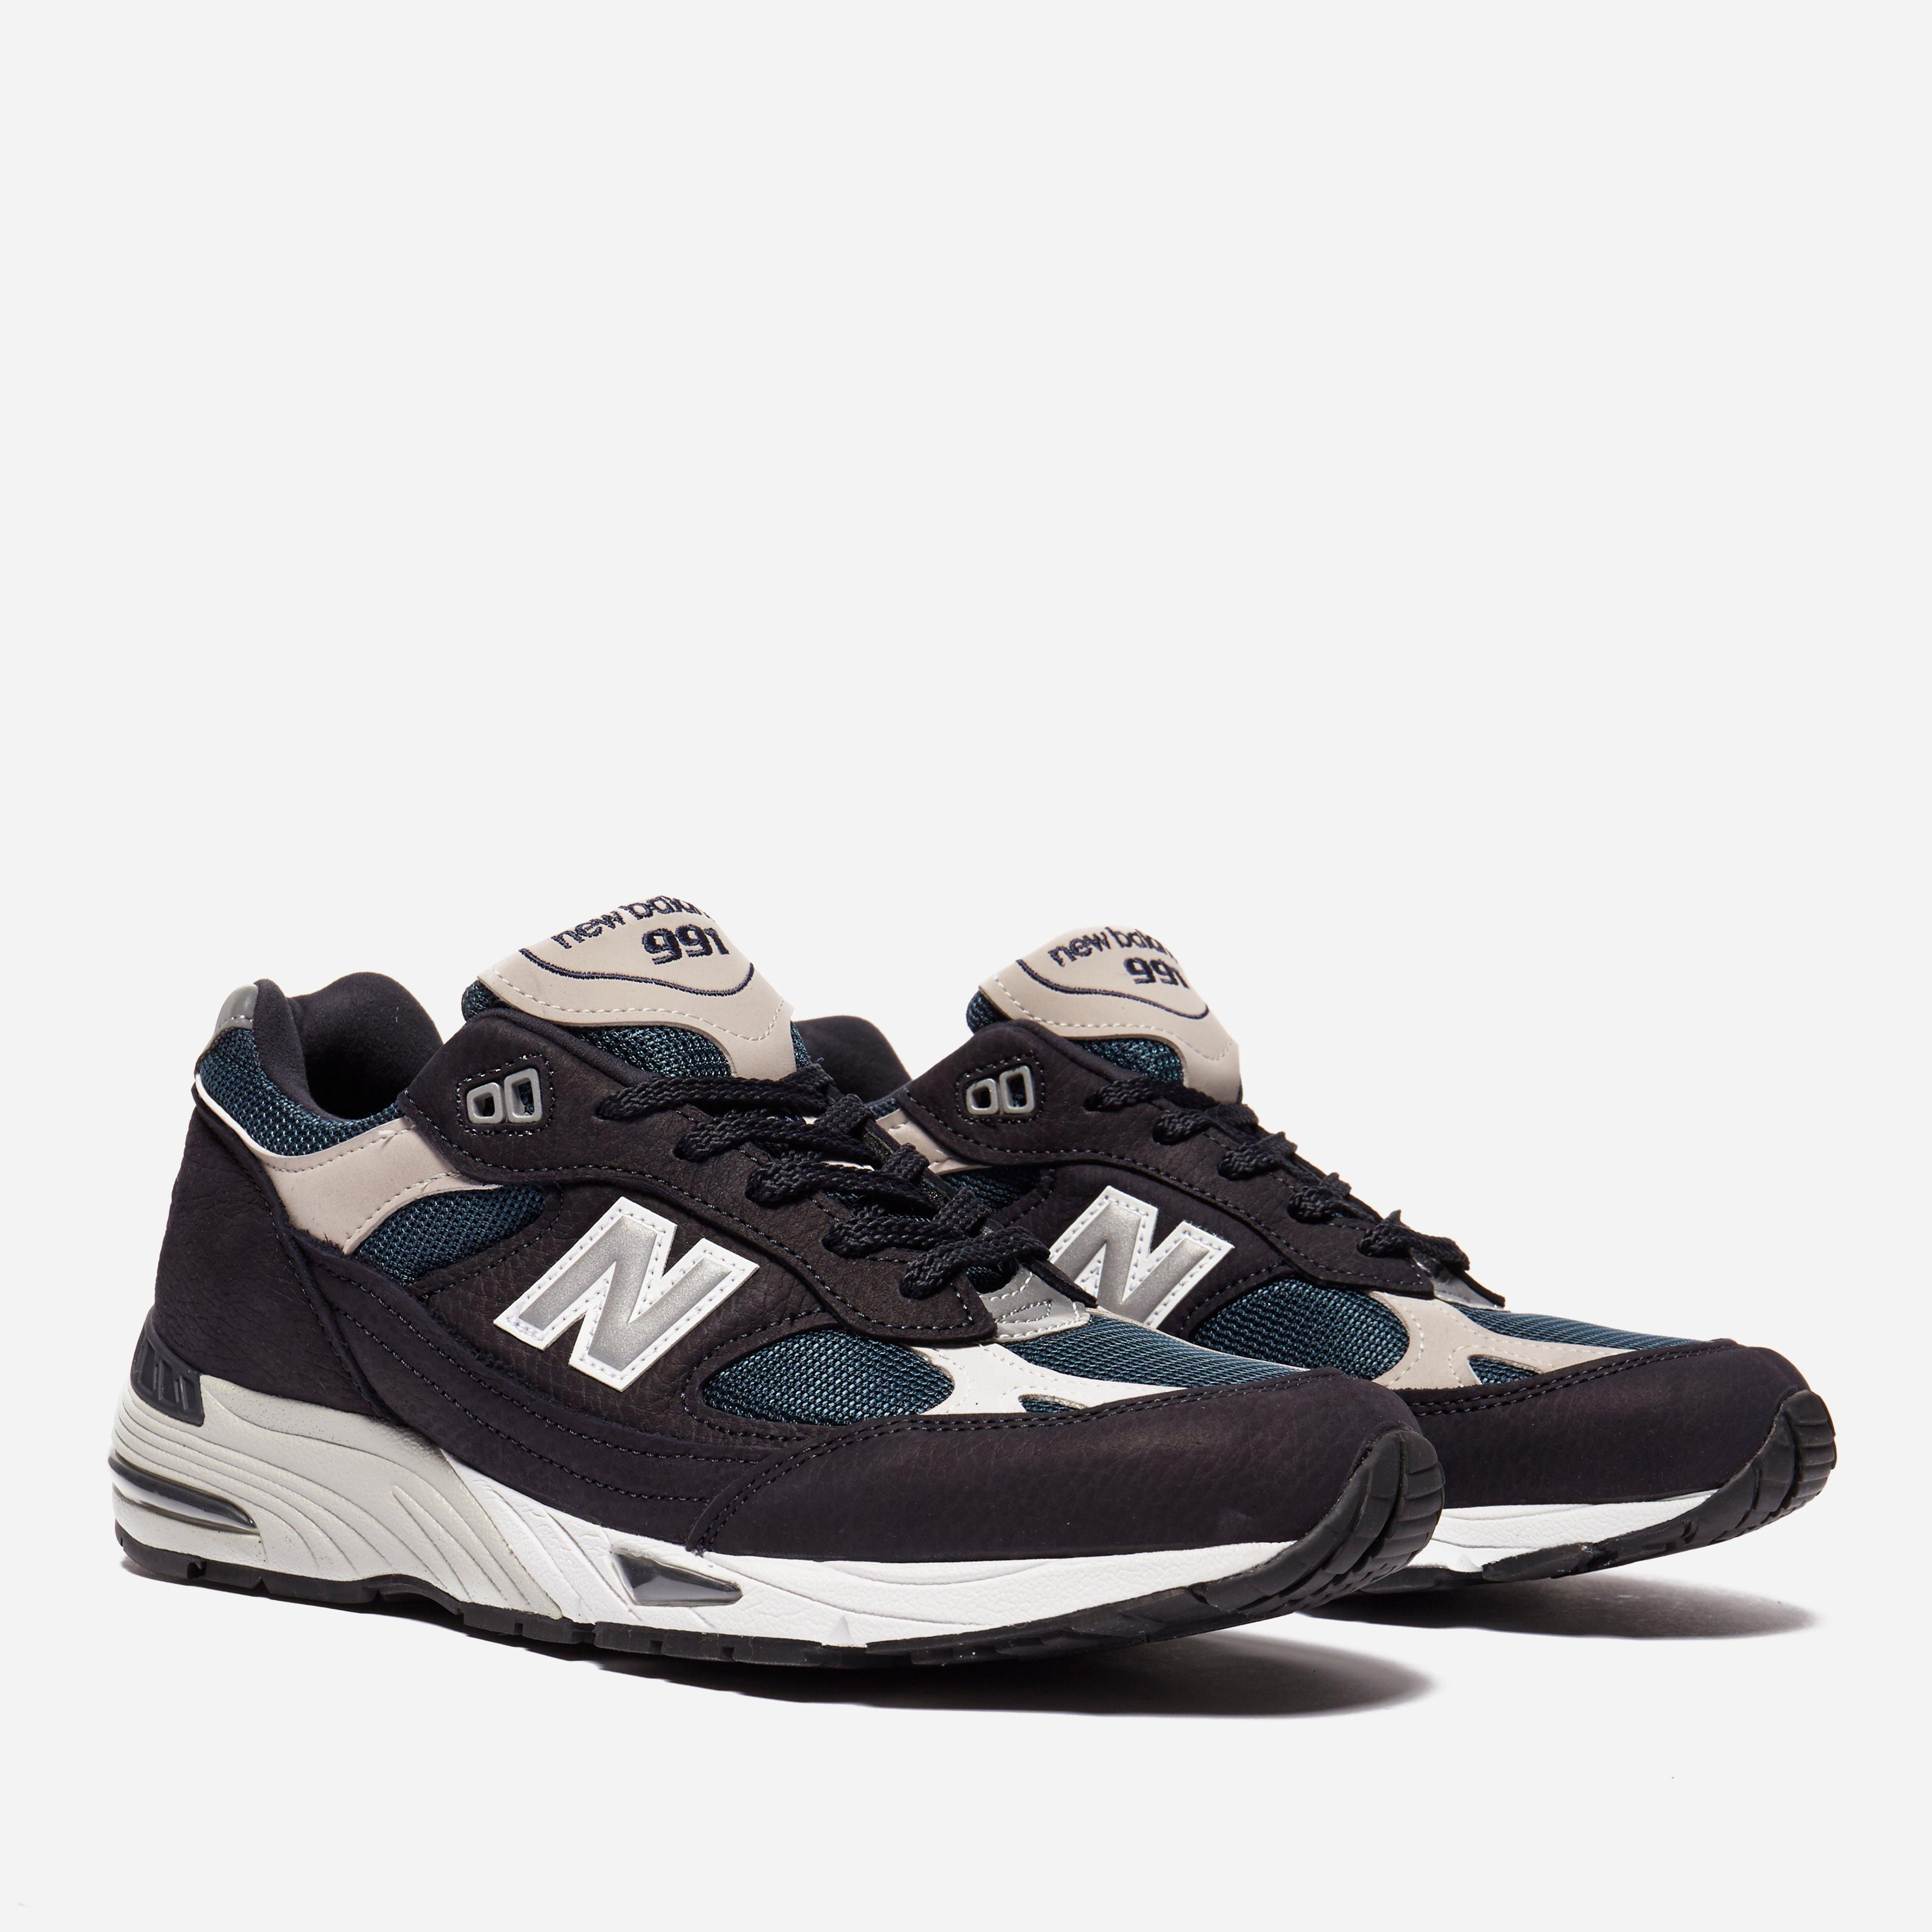 New Balance M 991 FA UK 35th Anniversary Pack